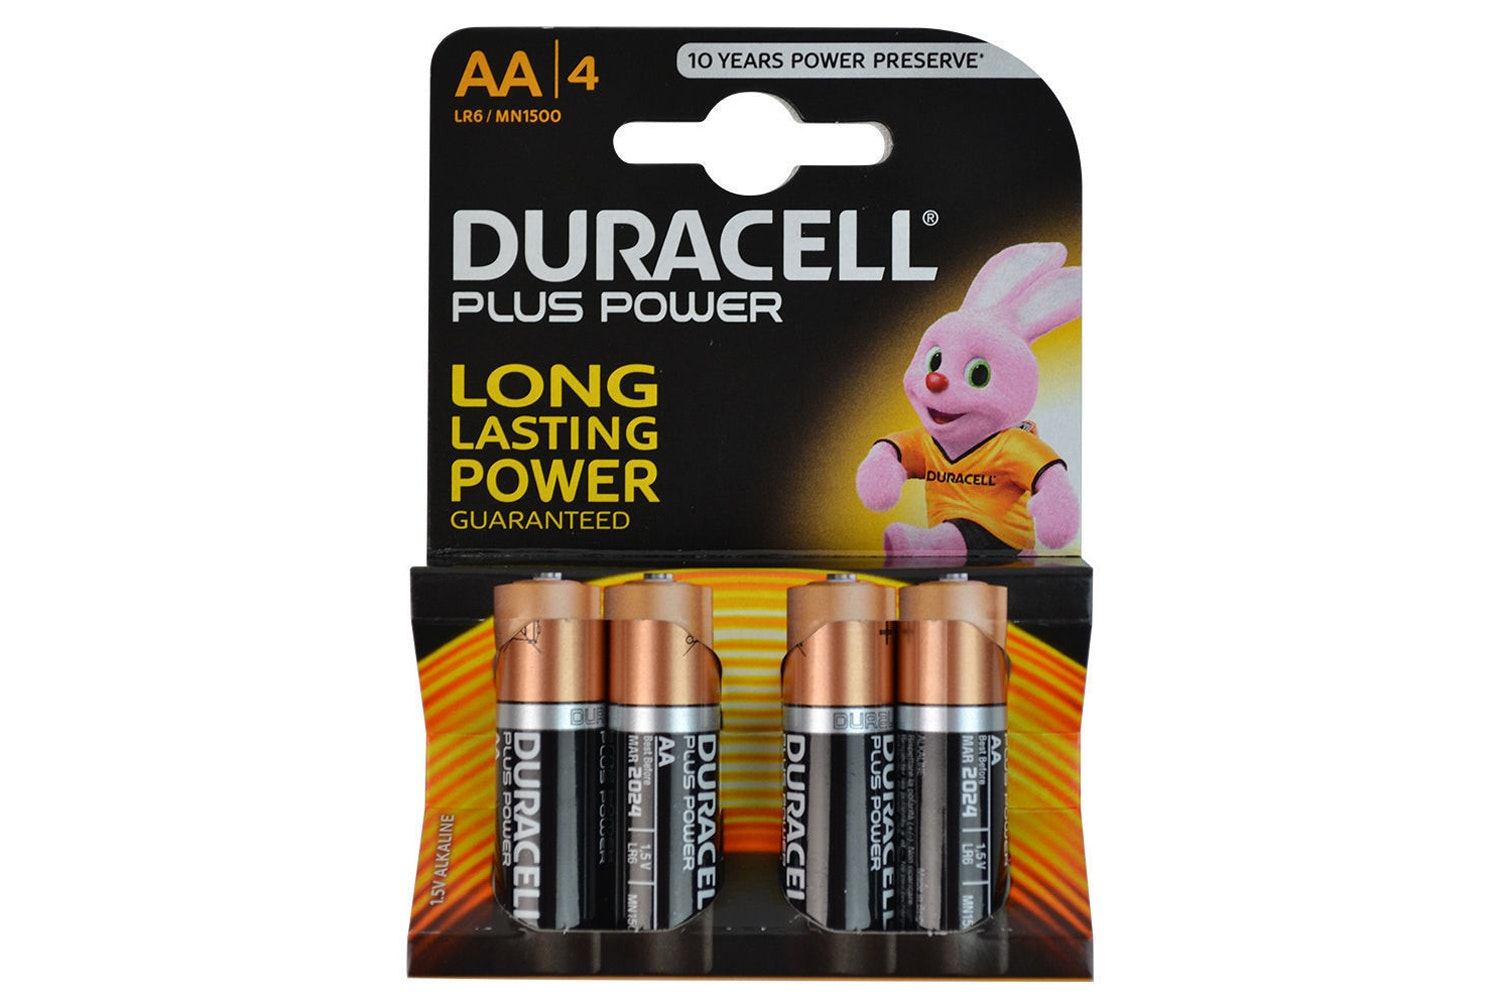 Duracell Plus Power AA Alkaline Battery | 4 Pack